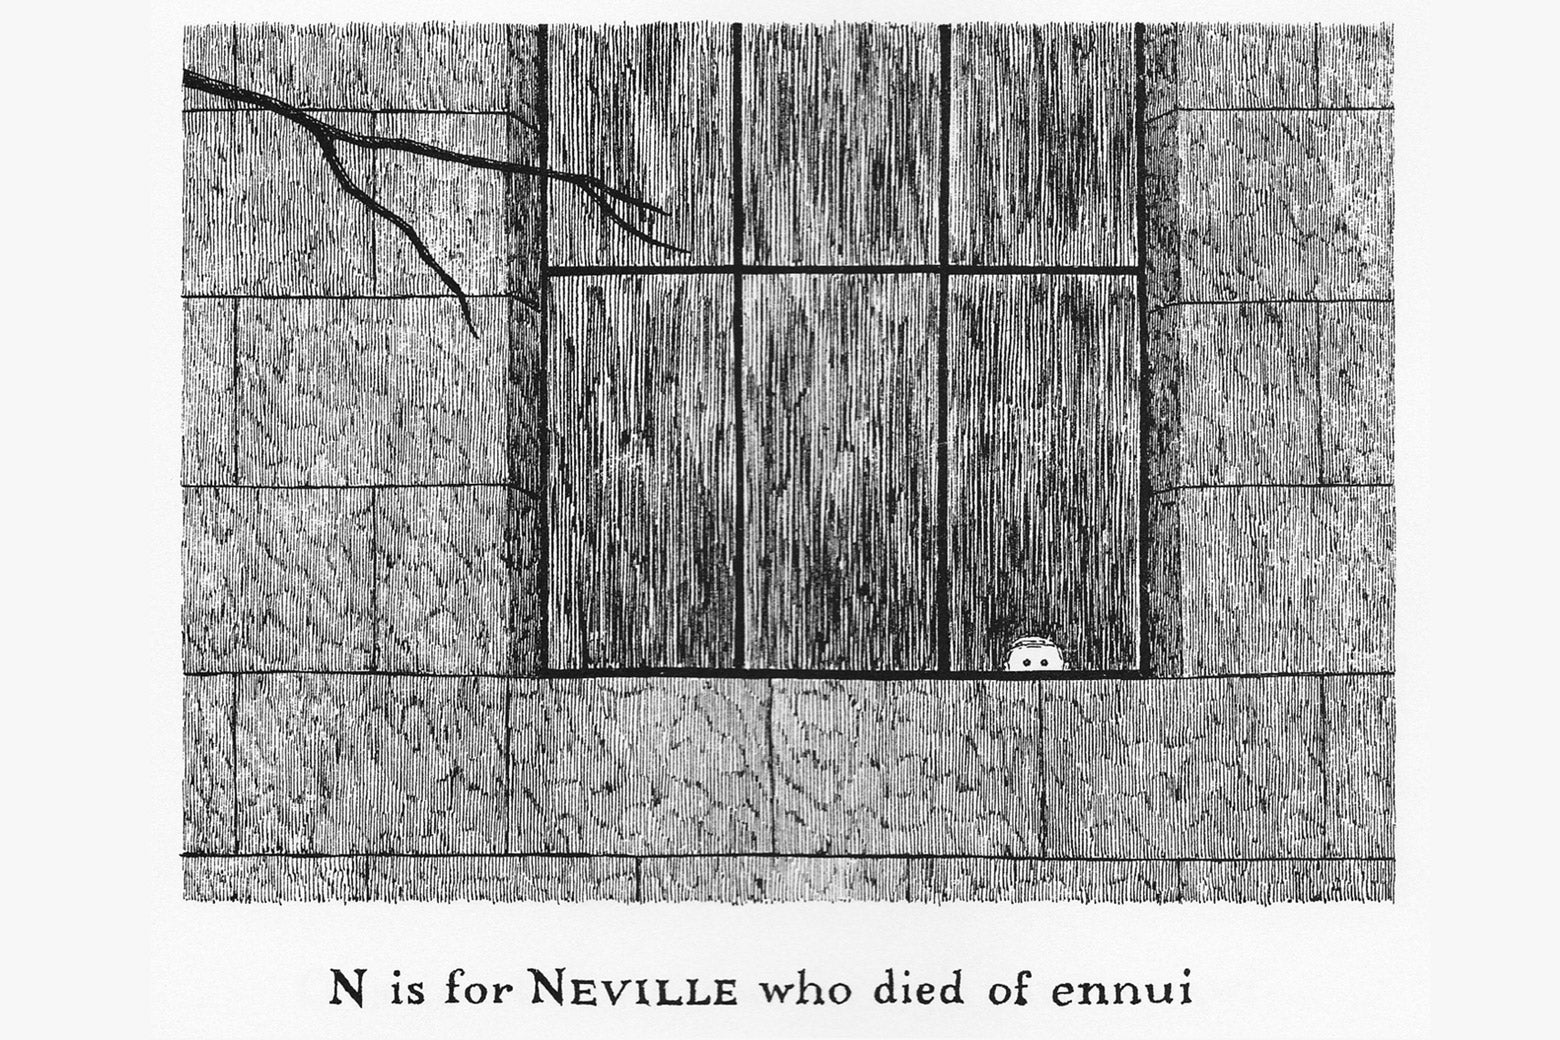 """N is for Neville who died of ennui"" panel from The Gashlycrumb Tinies."